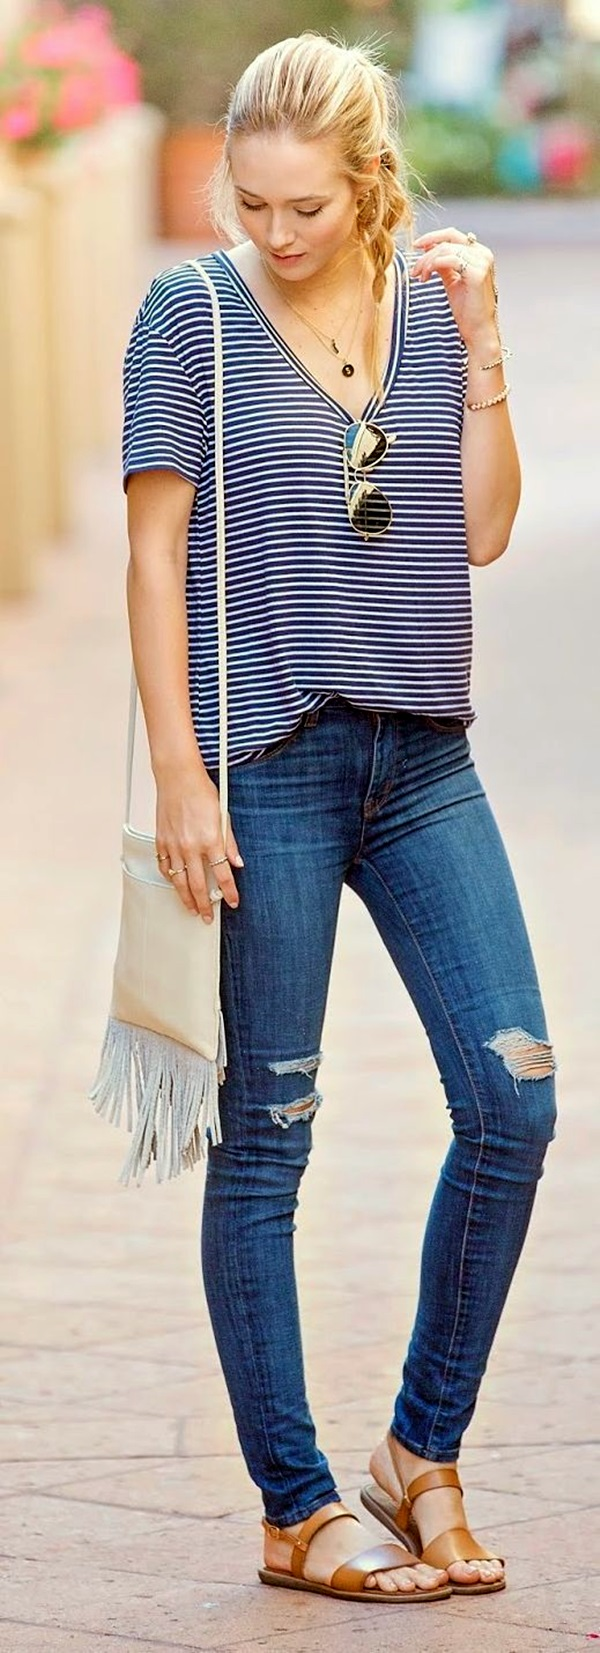 45 Ripped Jeans Outfit Ideas Every Stylish Girl Should Try - Fashion Enzyme